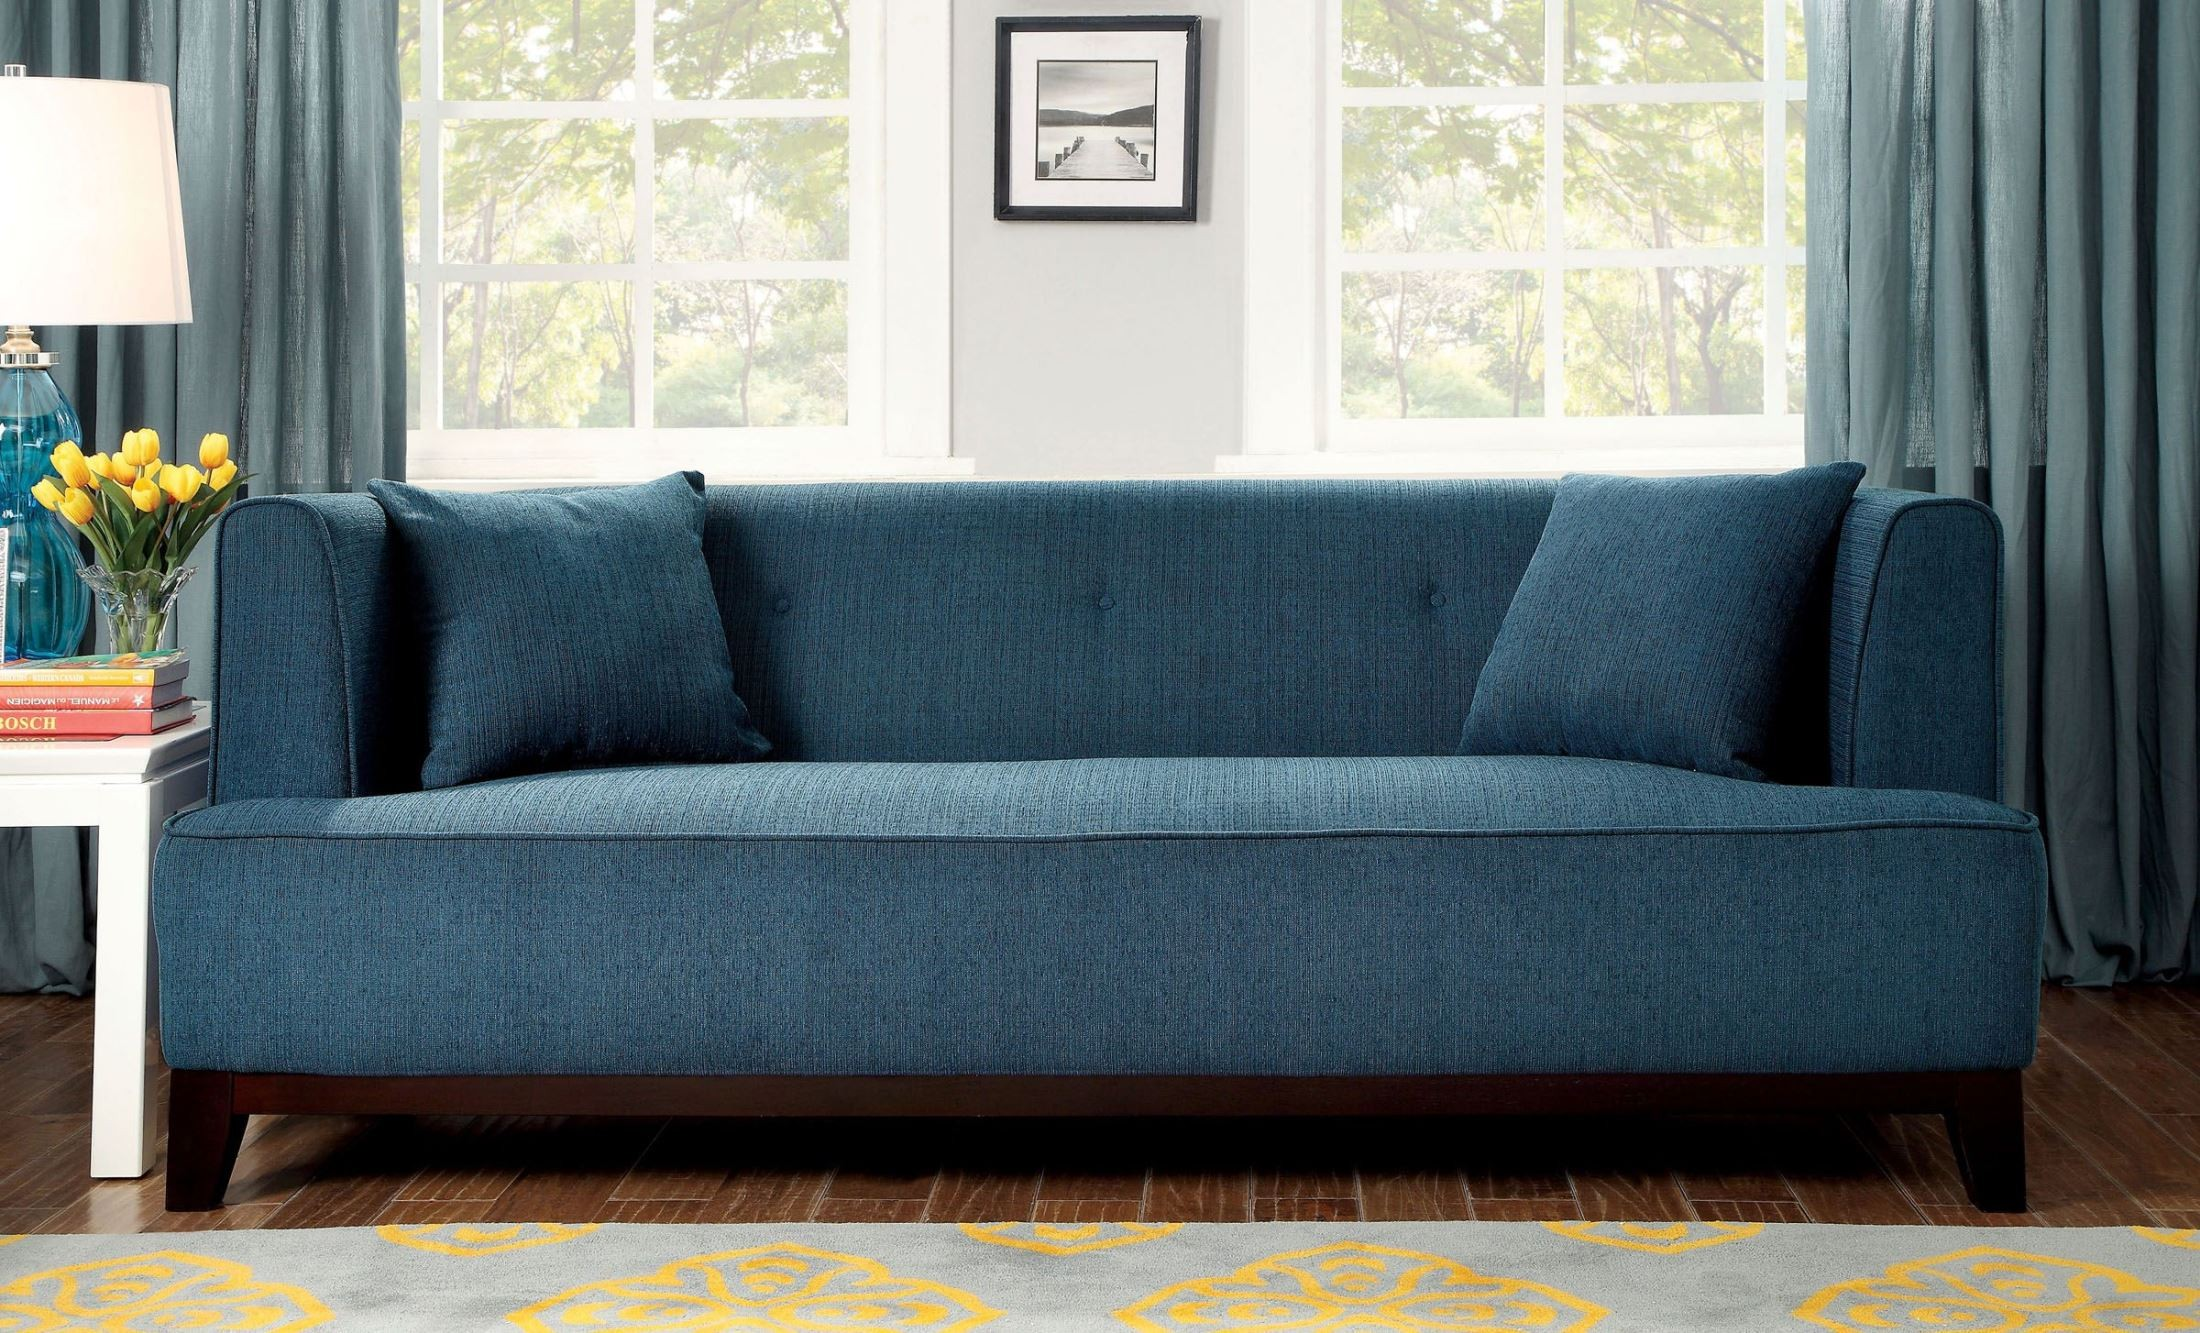 Sofia Dark Teal Sofa From Furniture Of America (CM6761TL SF PK) | Coleman  Furniture